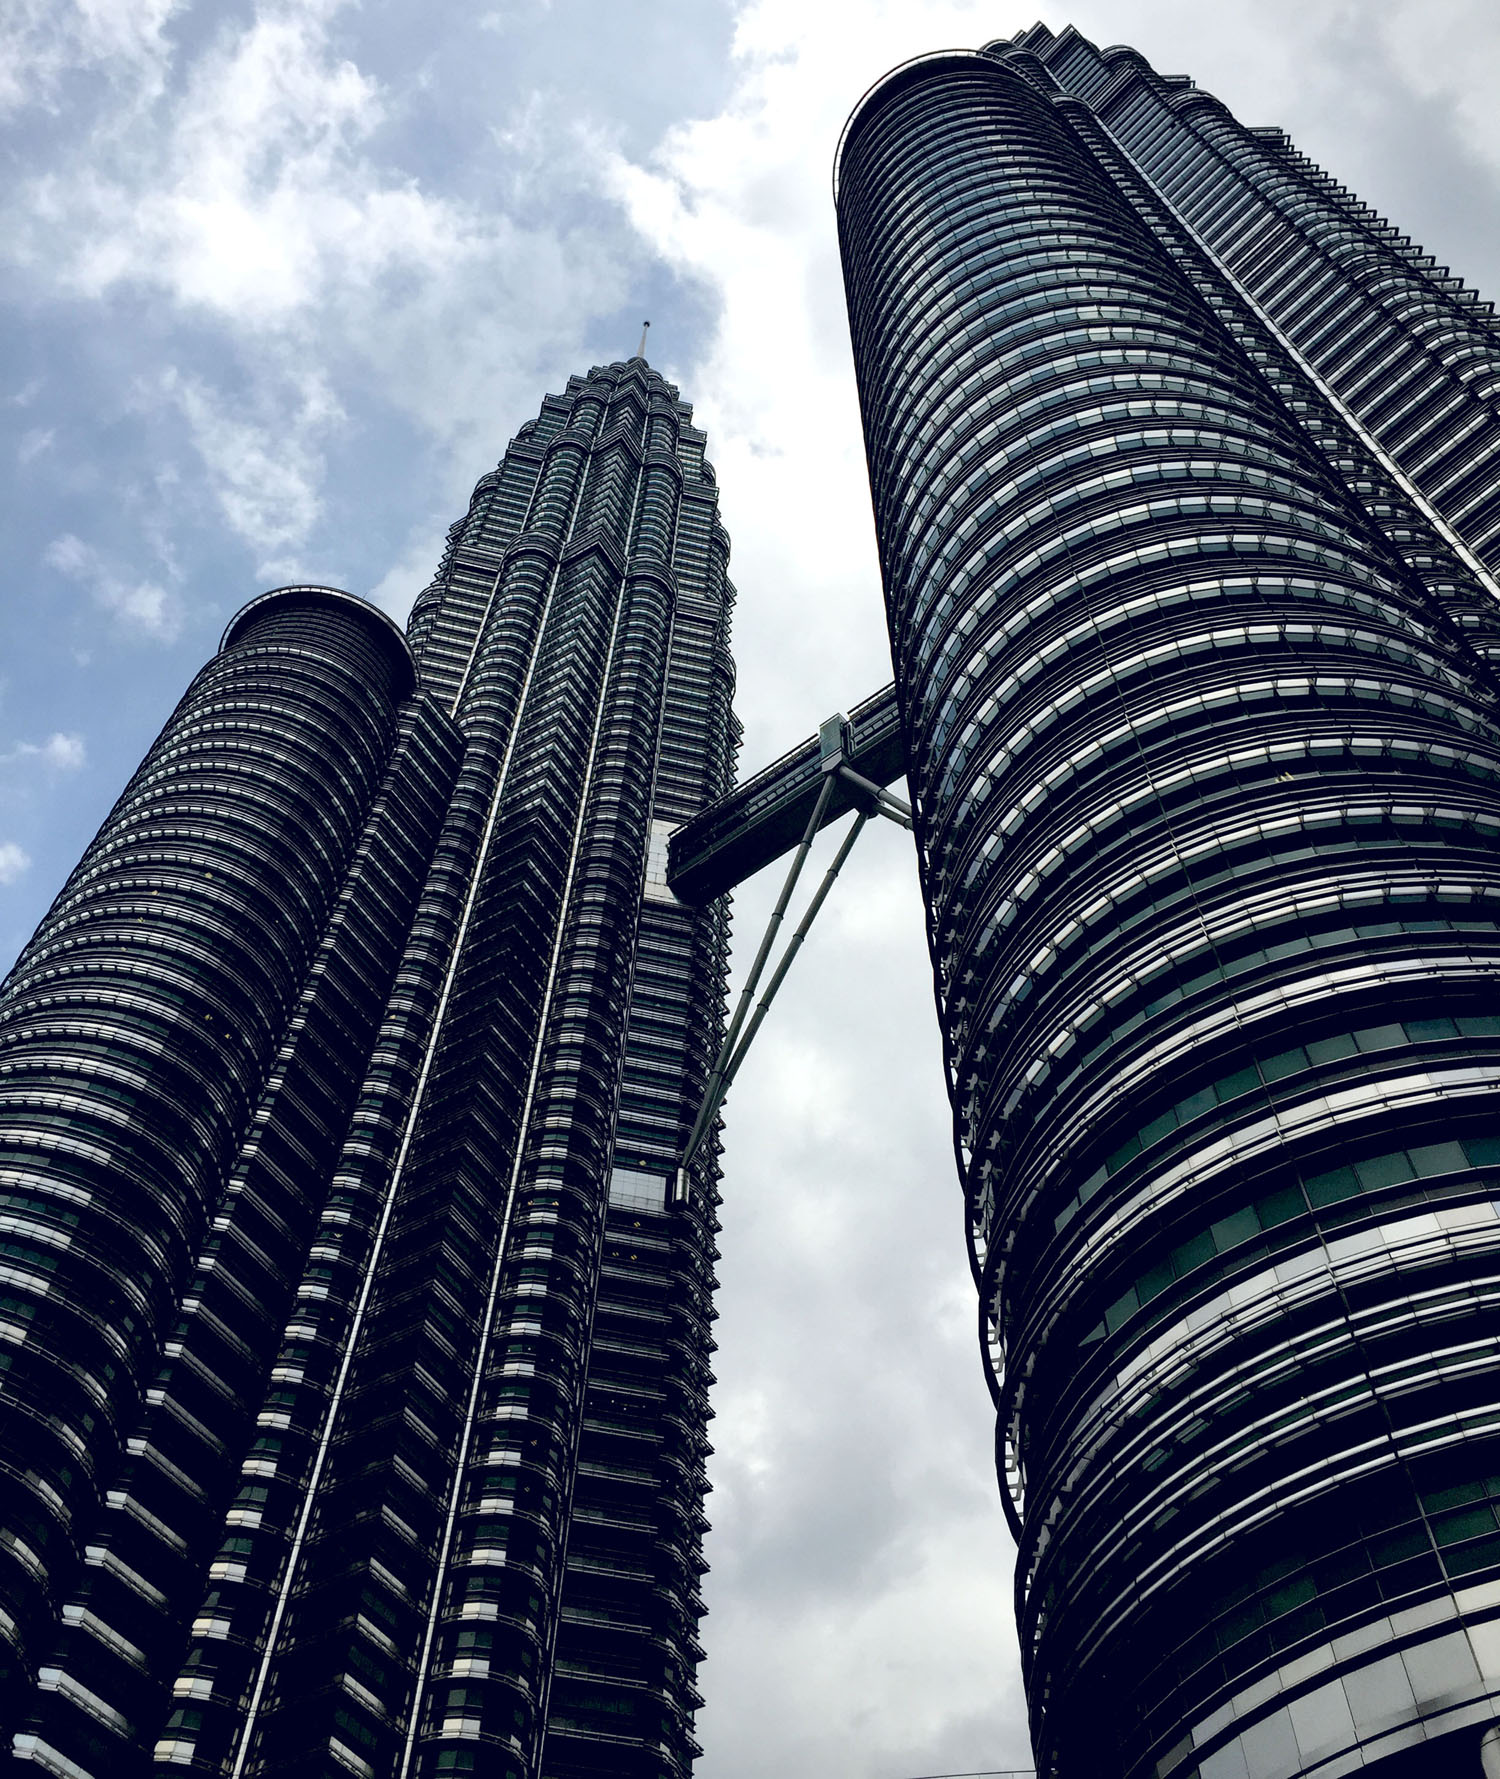 Culture Capsule #Malaysia: Highlights from Kuala Lumpur